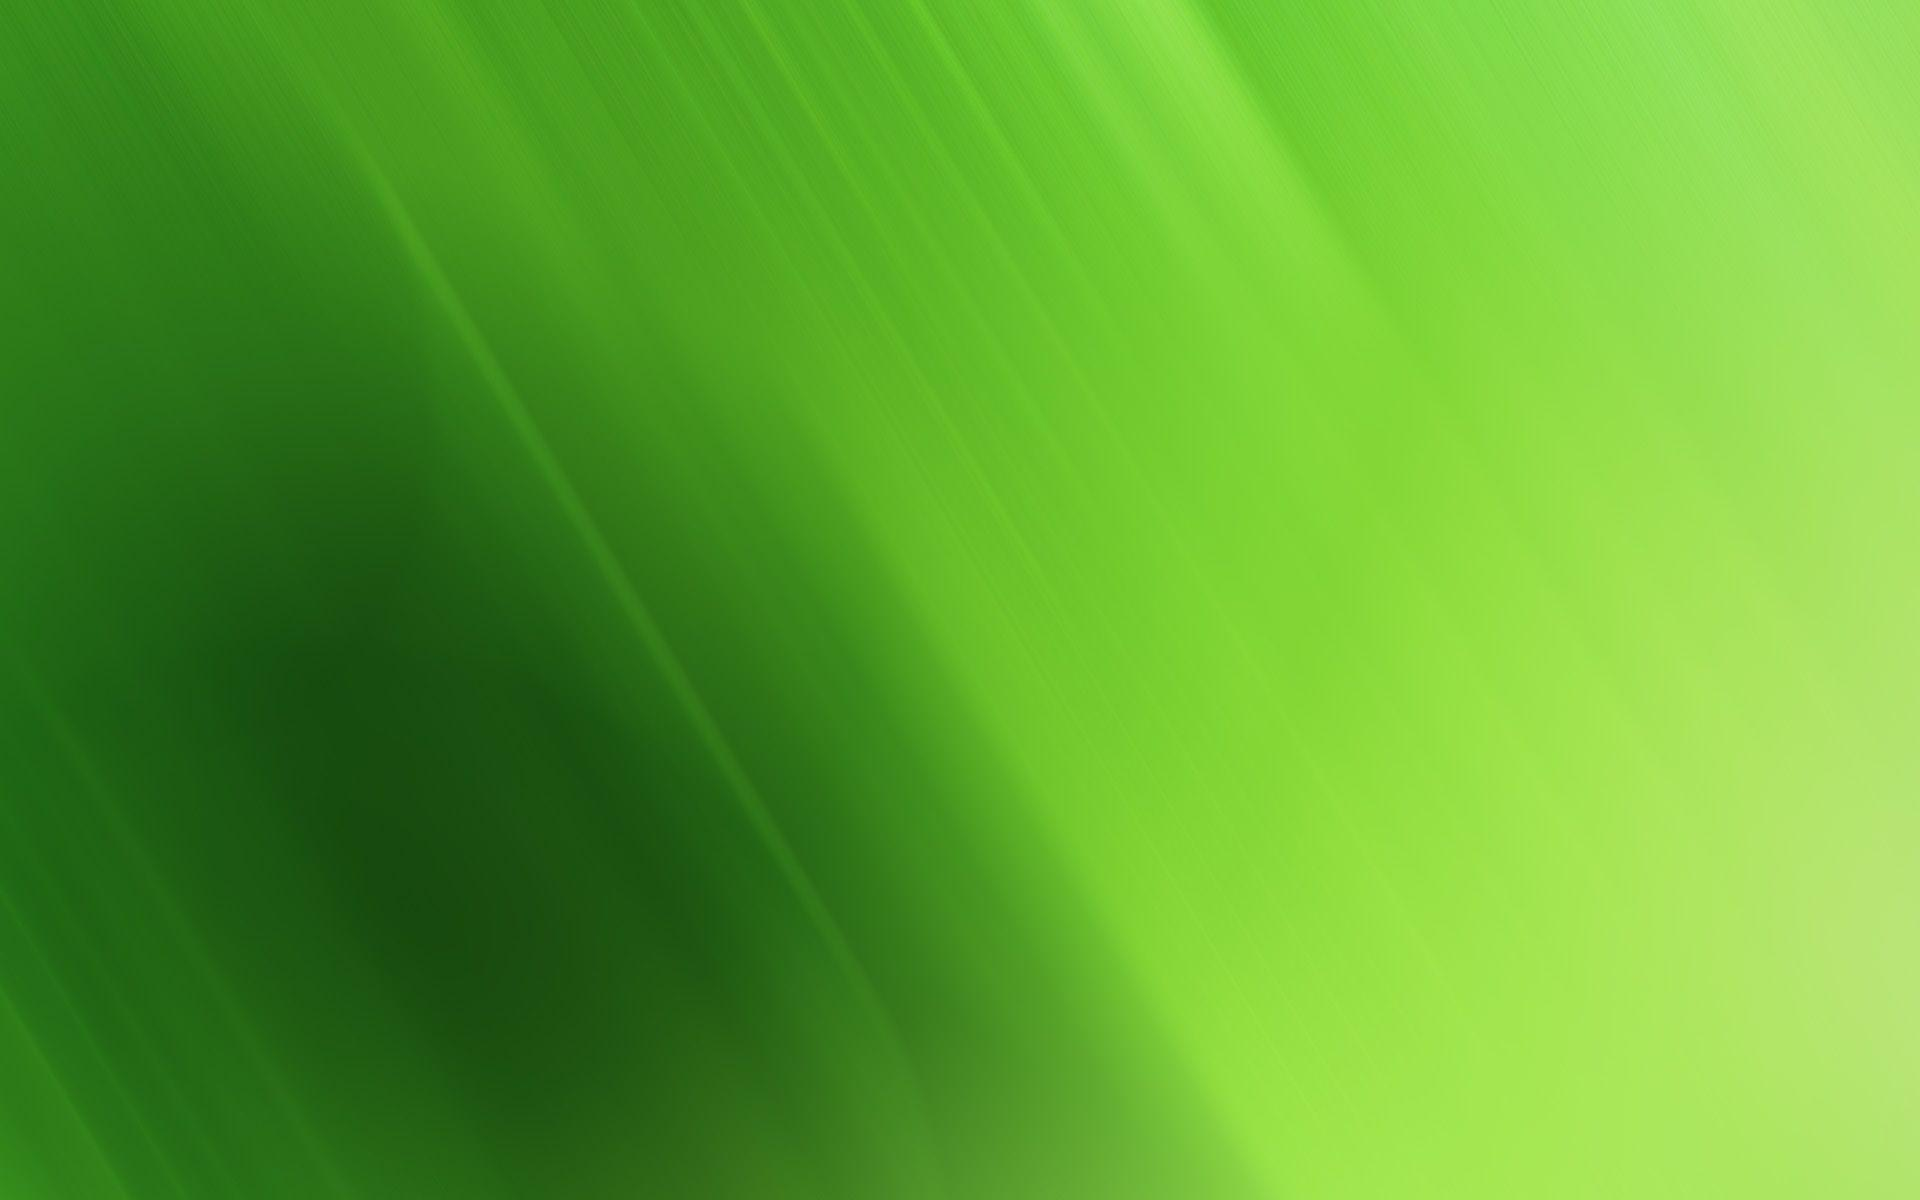 Wallpapers Green Backgrounds Image 6 HD Wallpapers